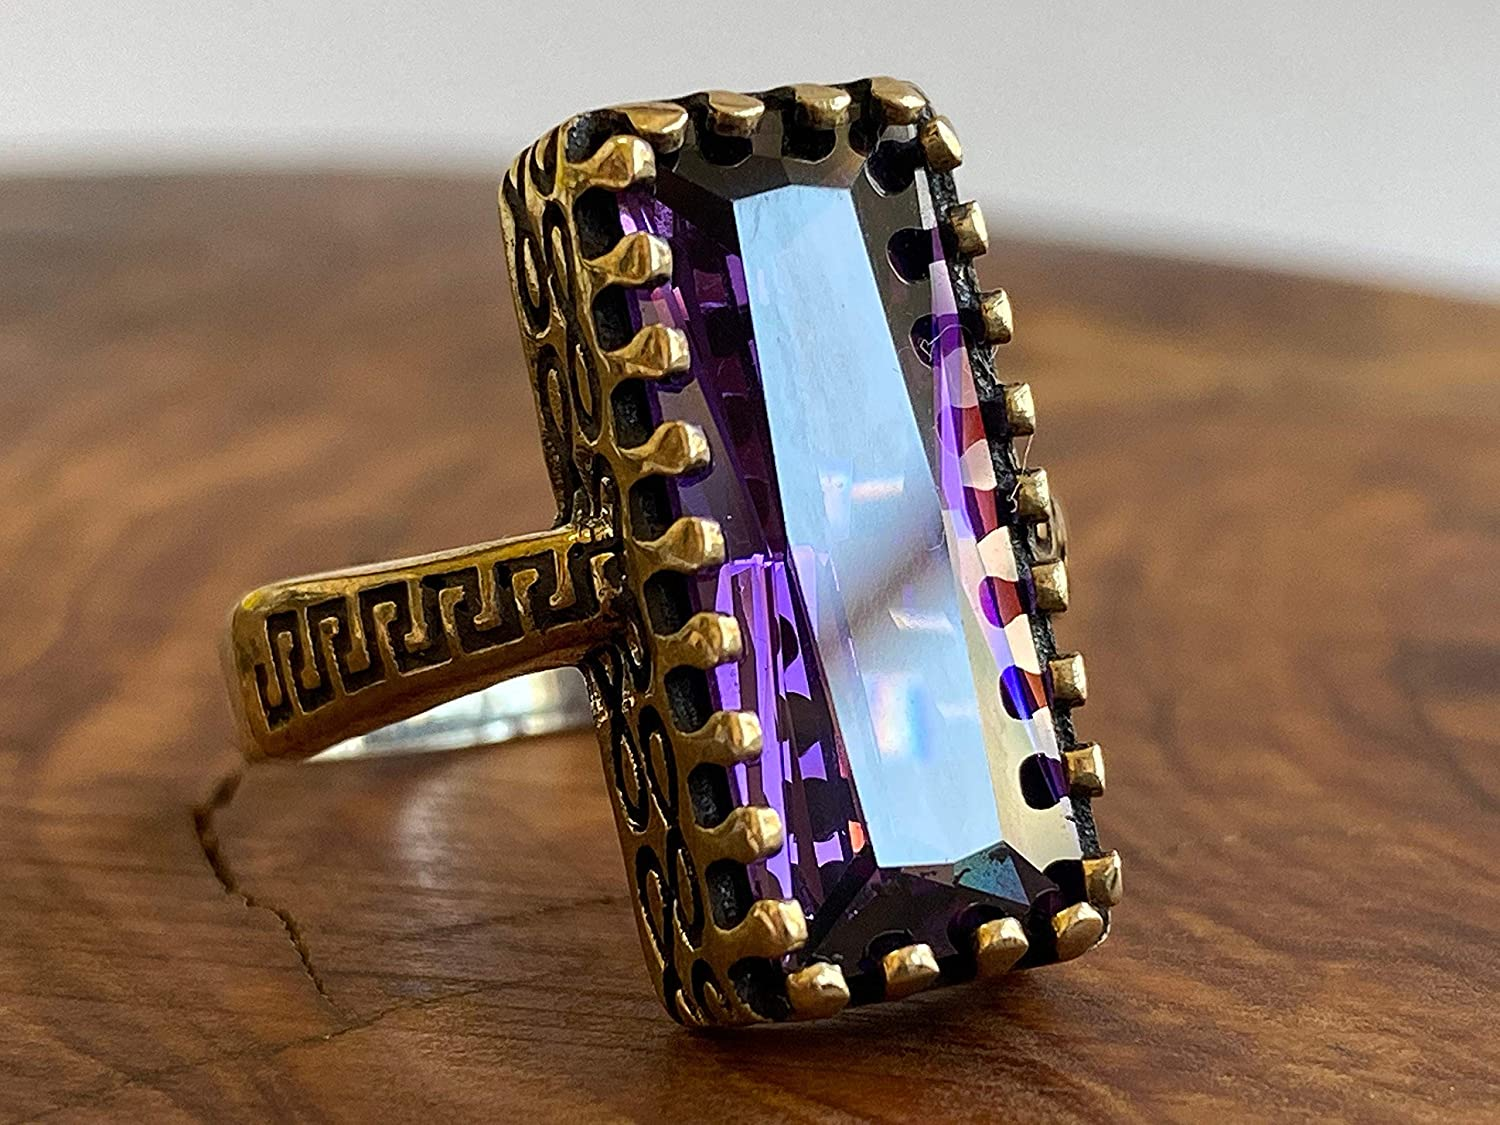 Handmade Turkish 925 Sterling Silver /& Baguette Cut Amethyst Solitaire Ring with Decorative Ottoman Style Clasps All Sizes